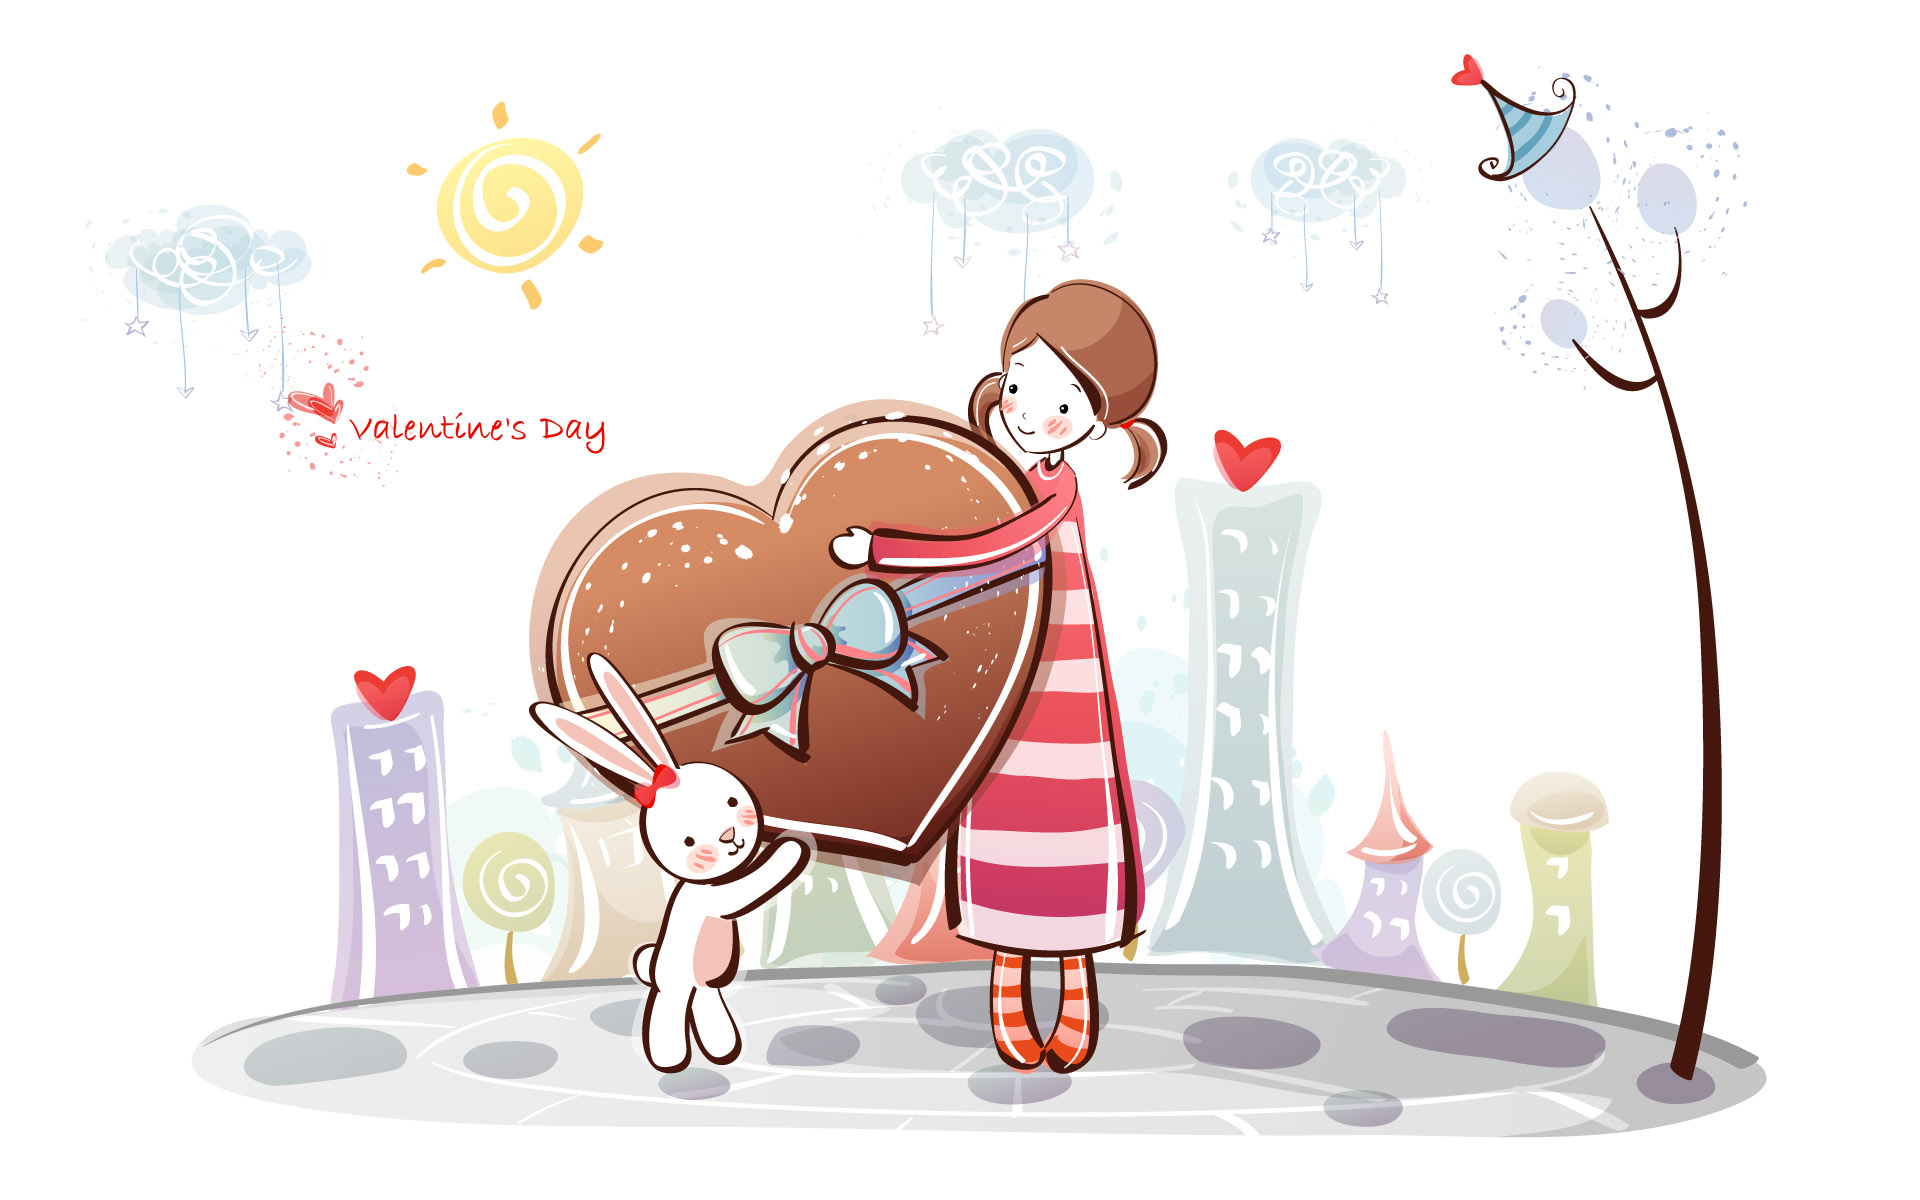 Romantic Valentine's Day illustration class 10827